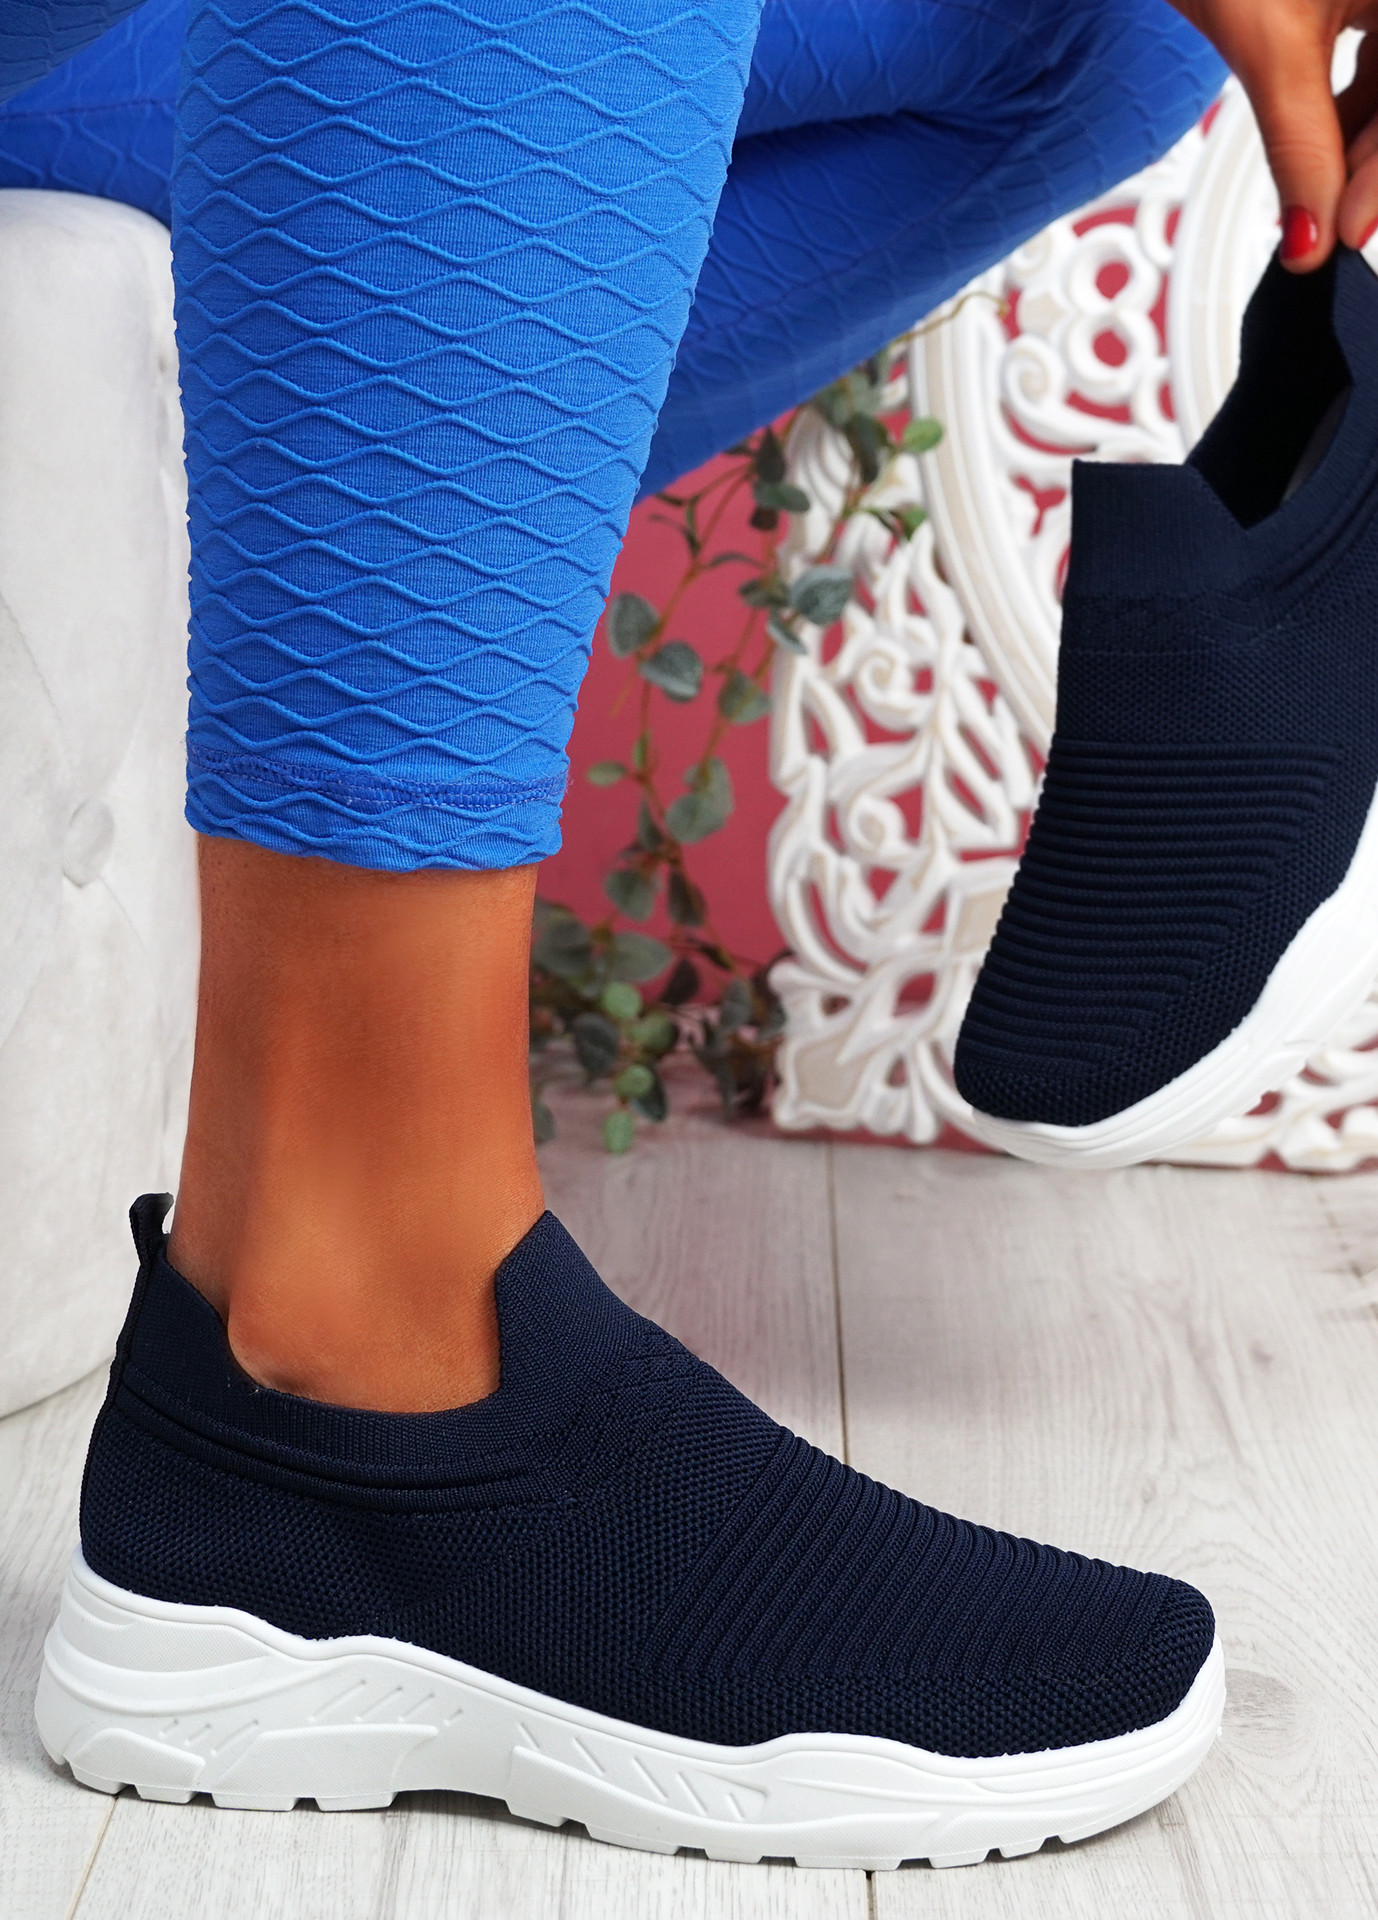 Noxy Blue Slip On Knit Trainers